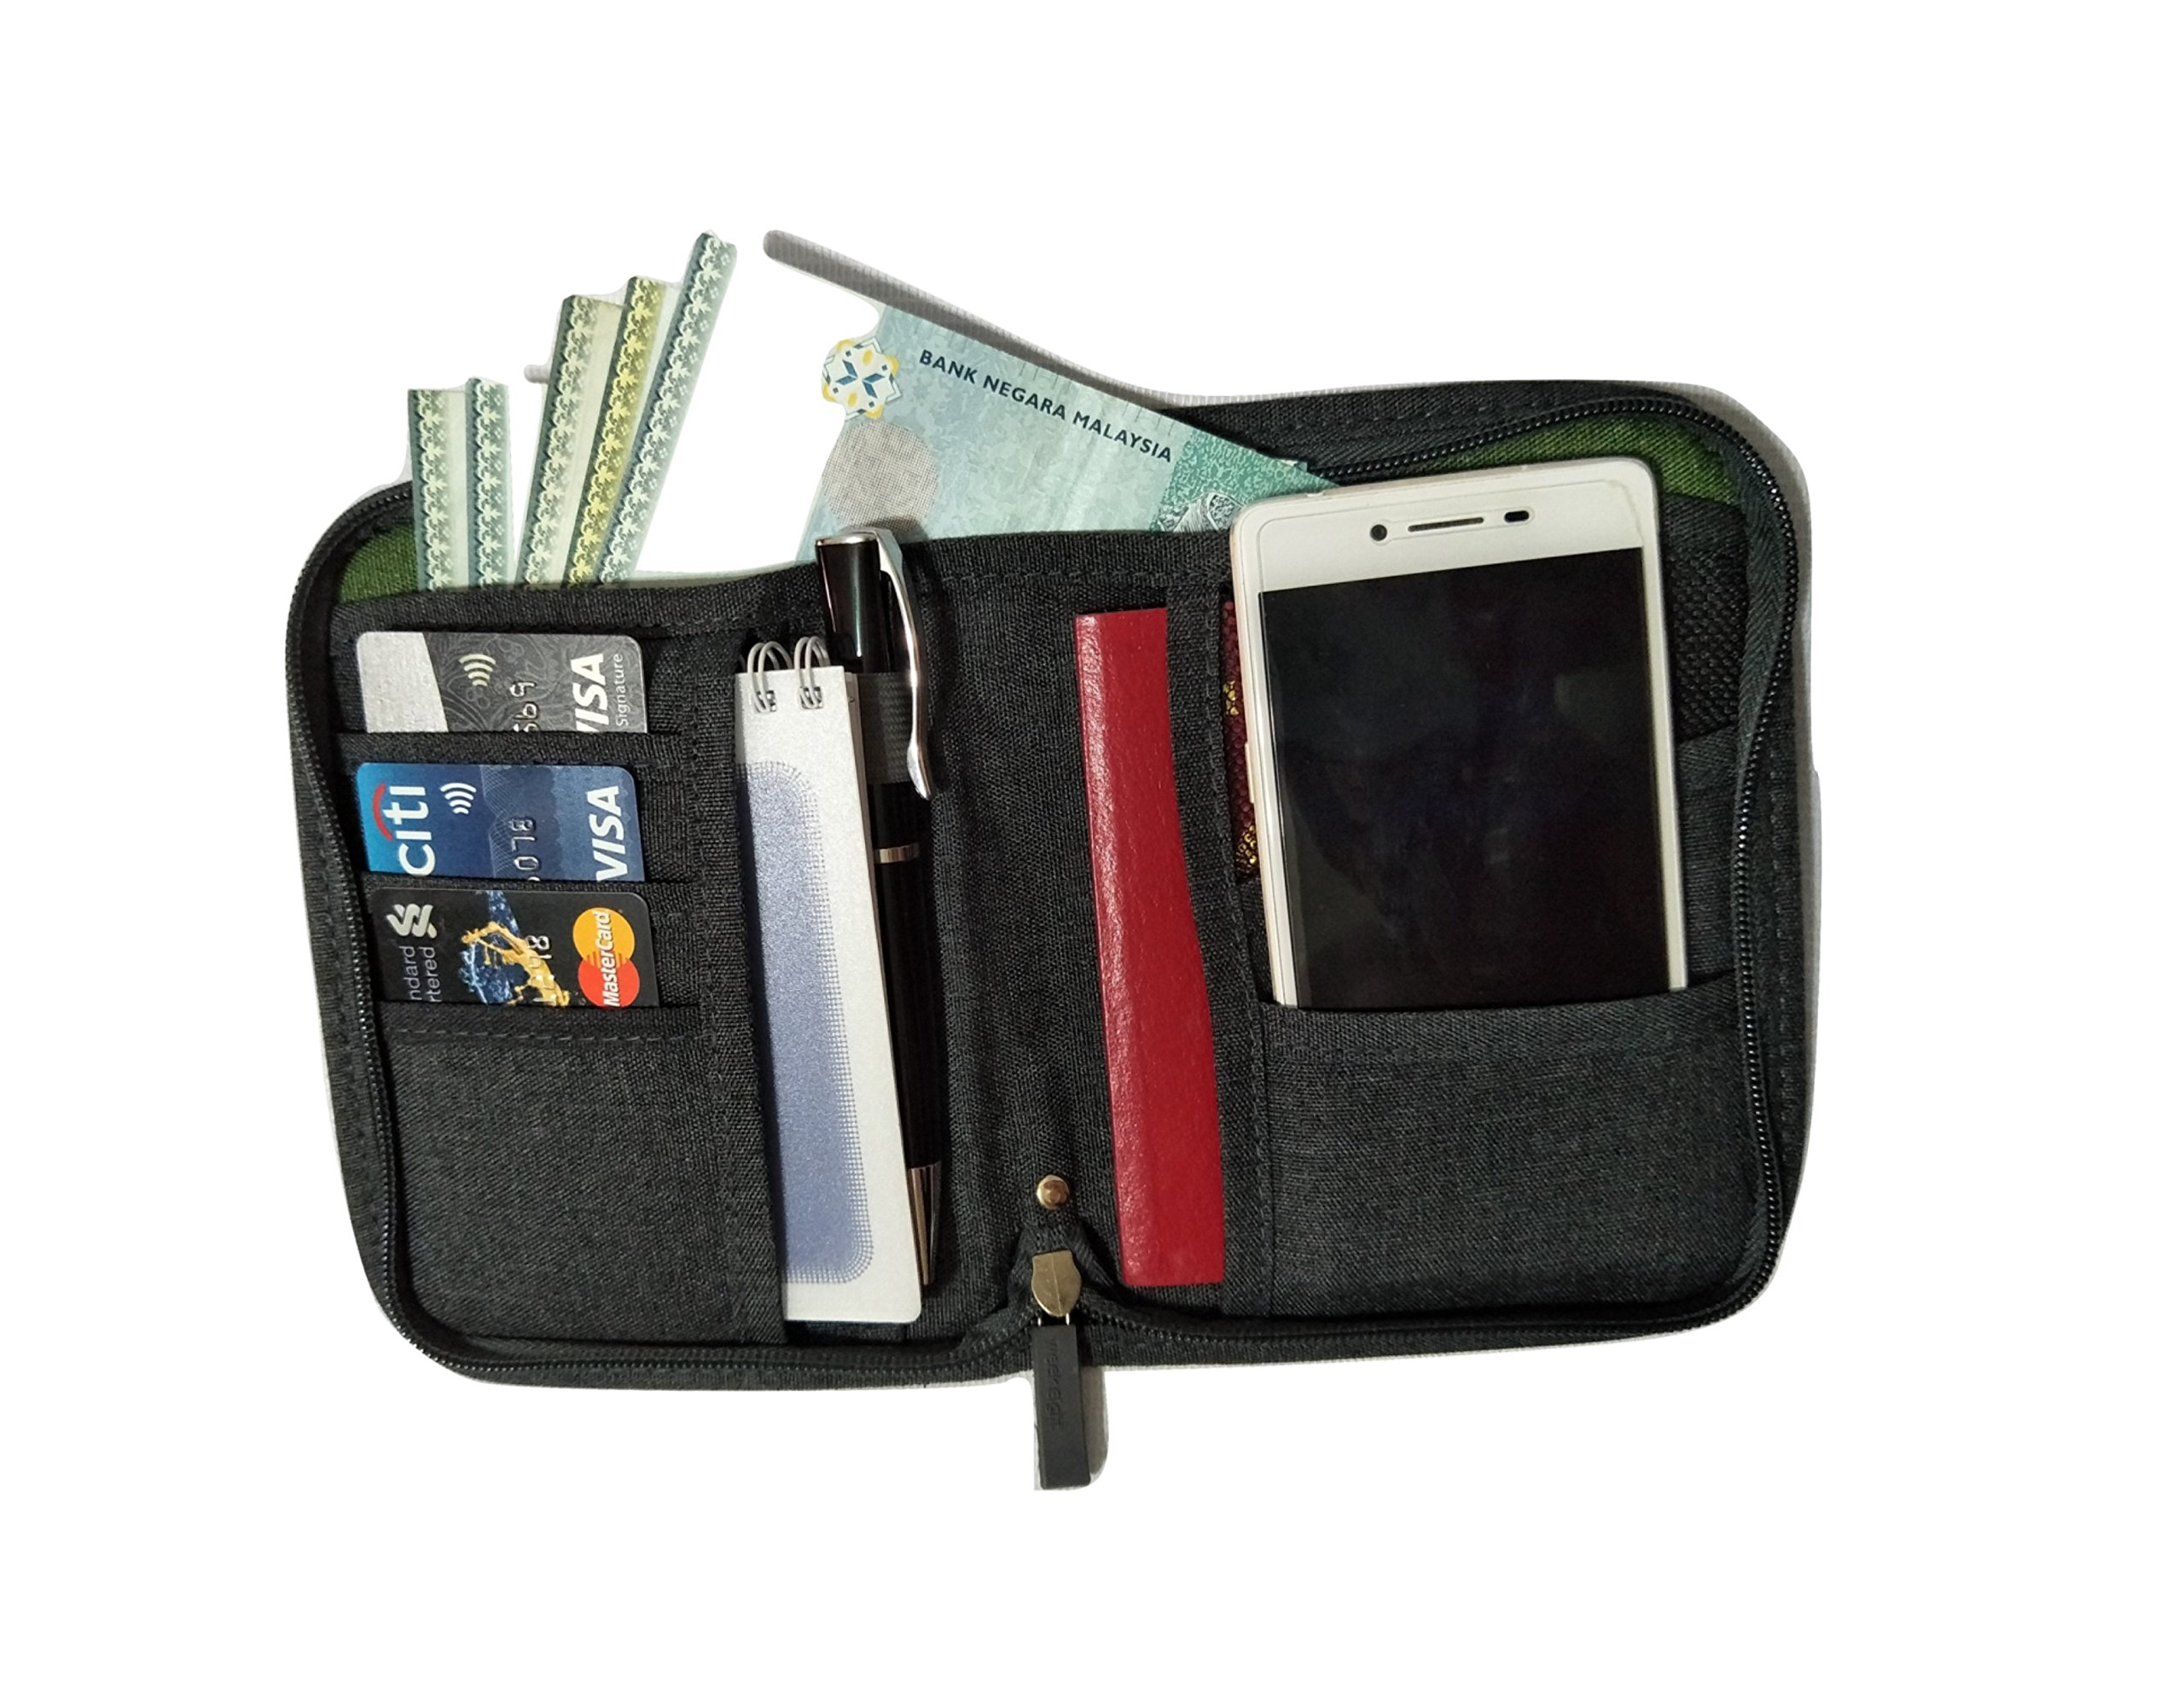 Travelus Travel Passport Wallet Organizer Provides All In One Passport Holder Case For Men & Women To Put Your Travel Documents – Passport, Boarding Pass, Credit Card, Cash, Pen & Cell Phone